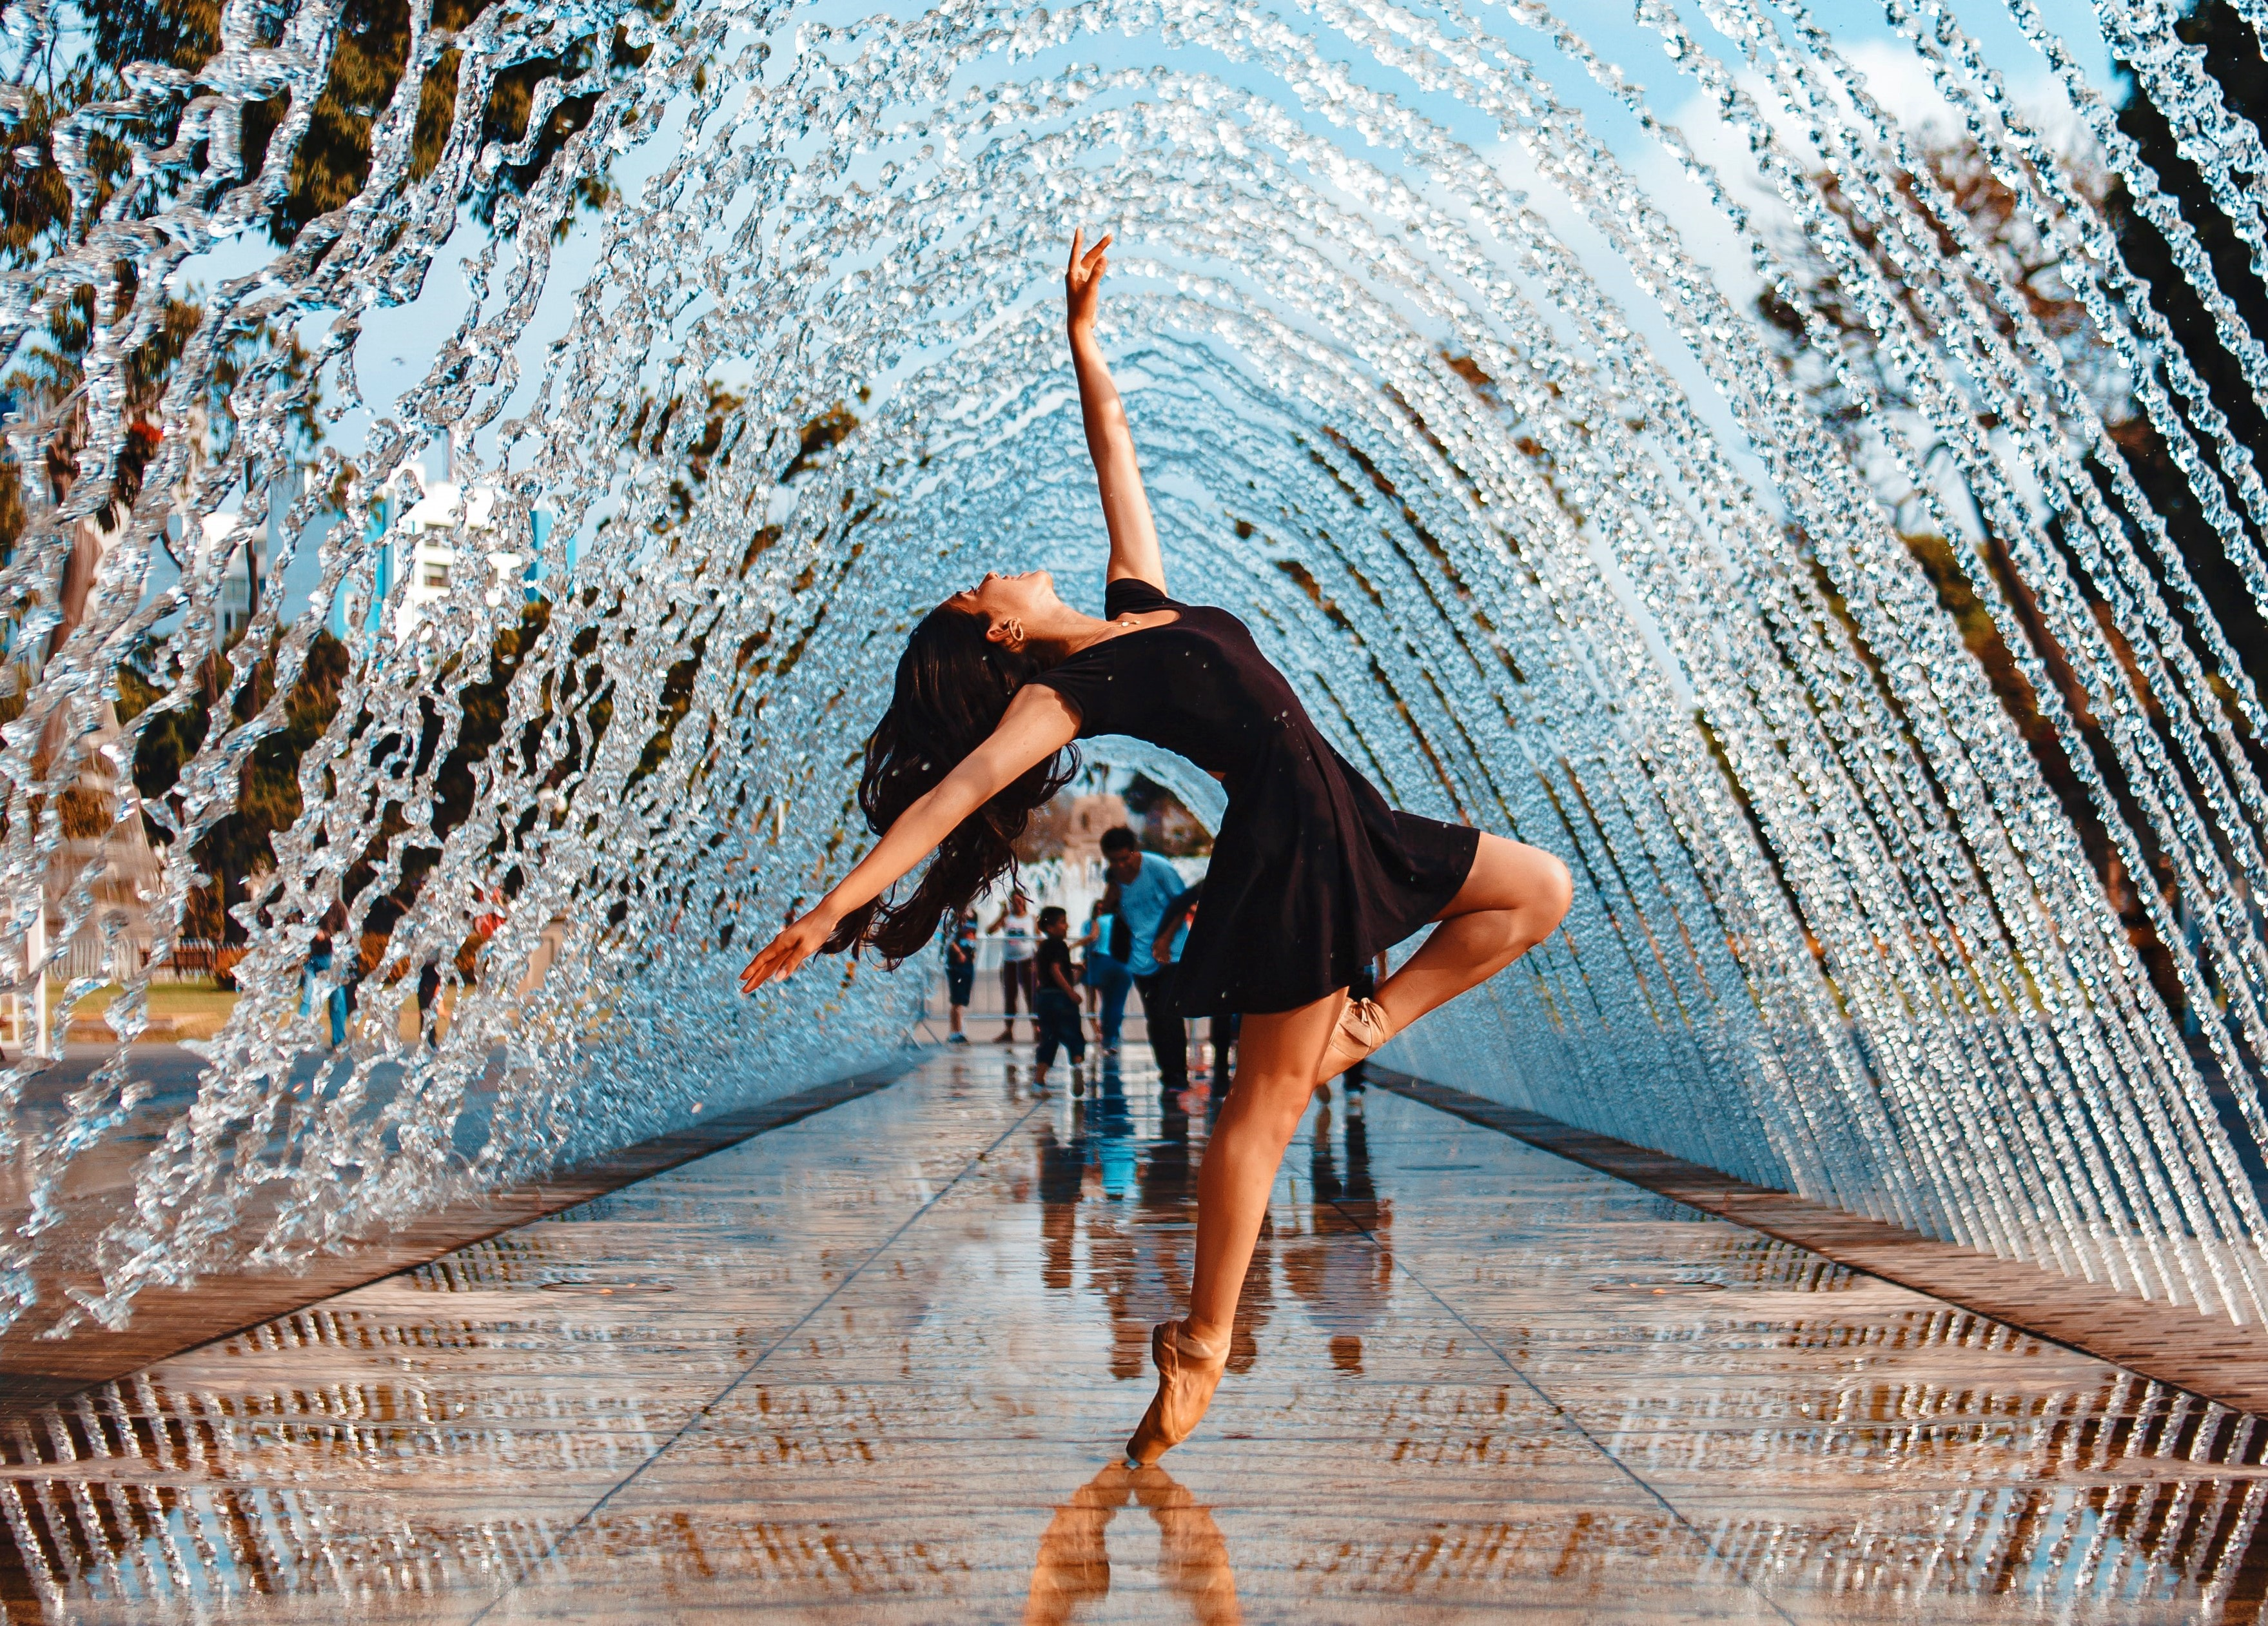 female dancer with dark hair wearing black dress in outstretched pose under water fountain